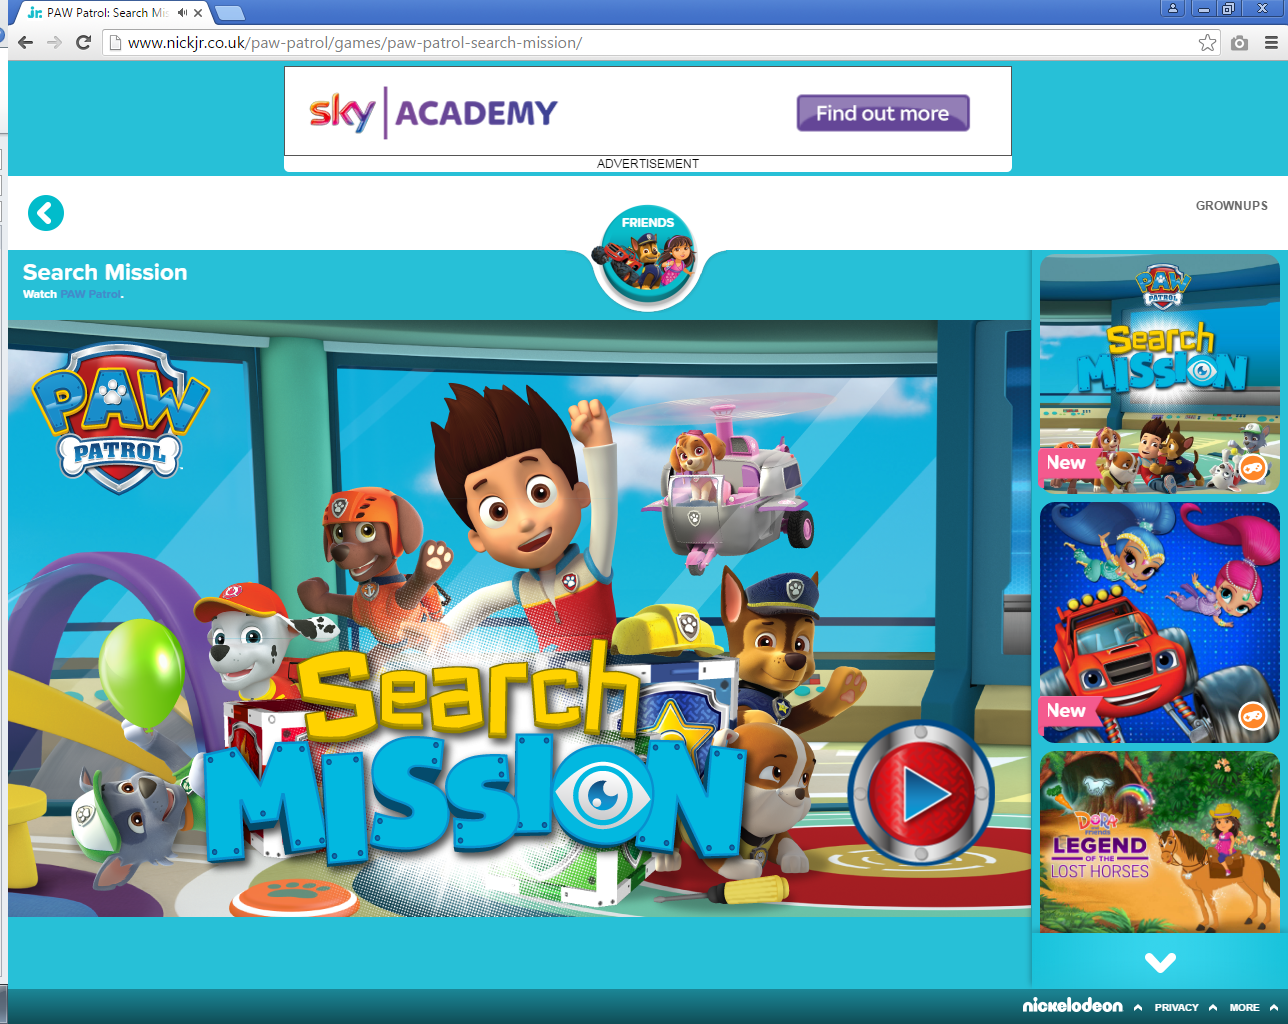 Mummy Of 3 Diaries: Head to NickJR For More Fun Than Ever ...